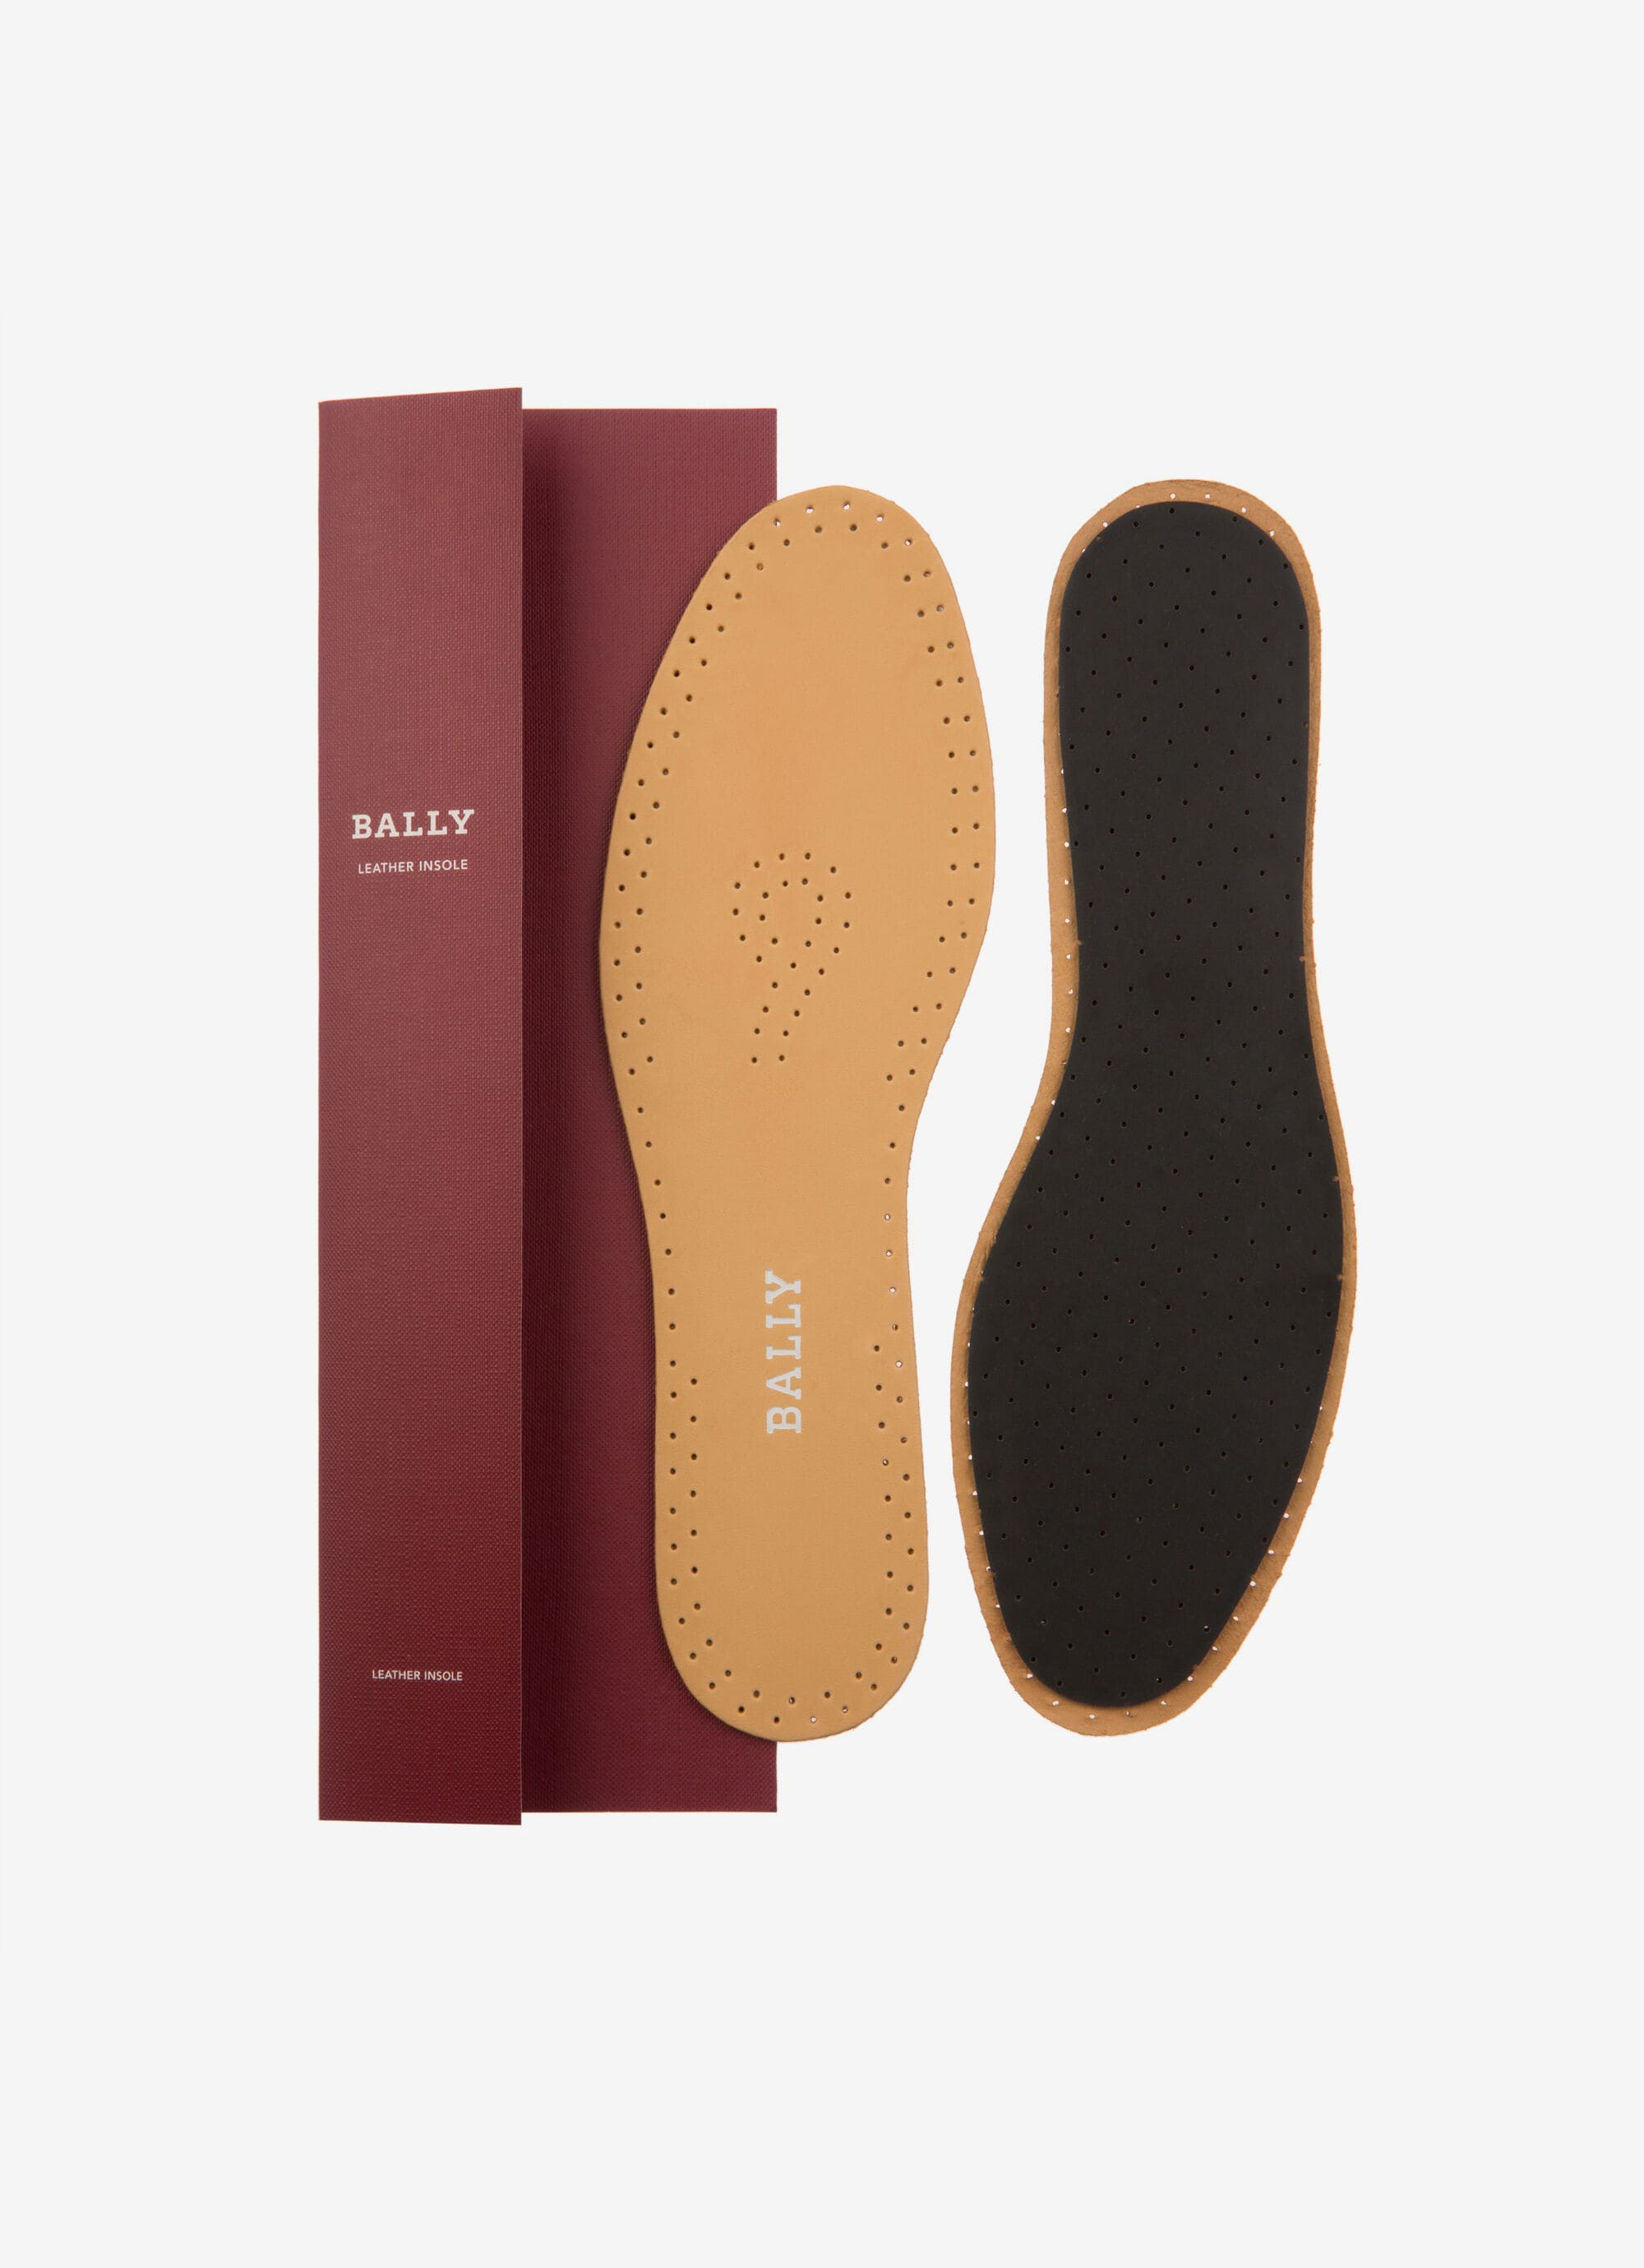 Leather Insole| Shoe Care Accessories